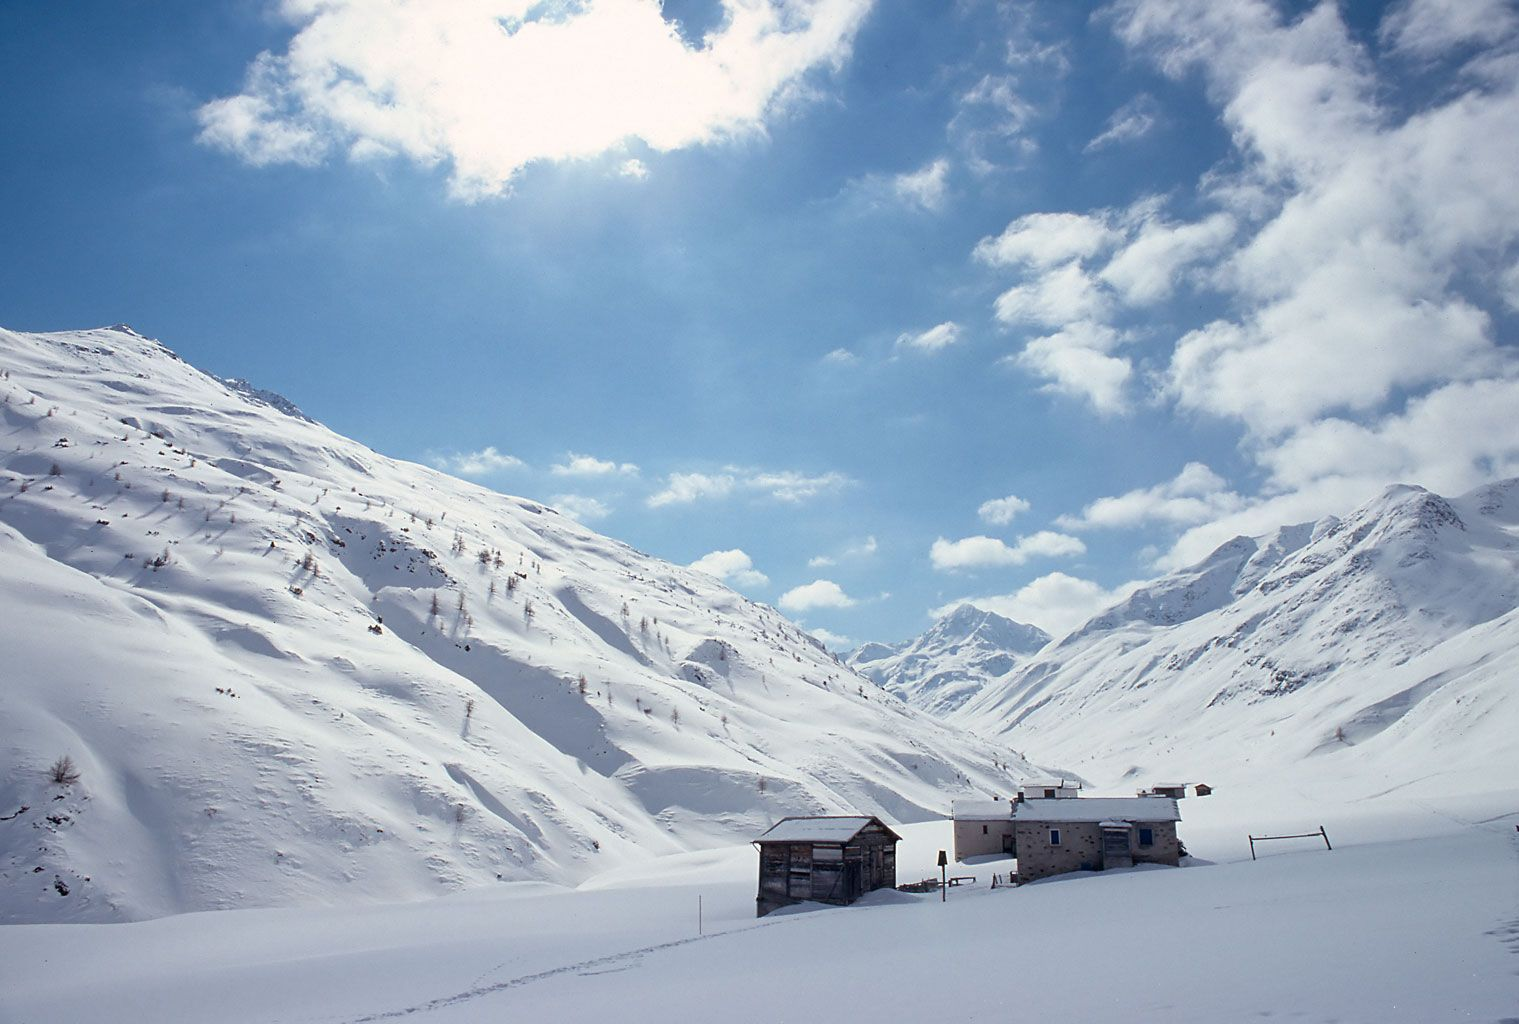 Livigno Italy Favorite Places Spaces Alps Winter snow 1519x1024